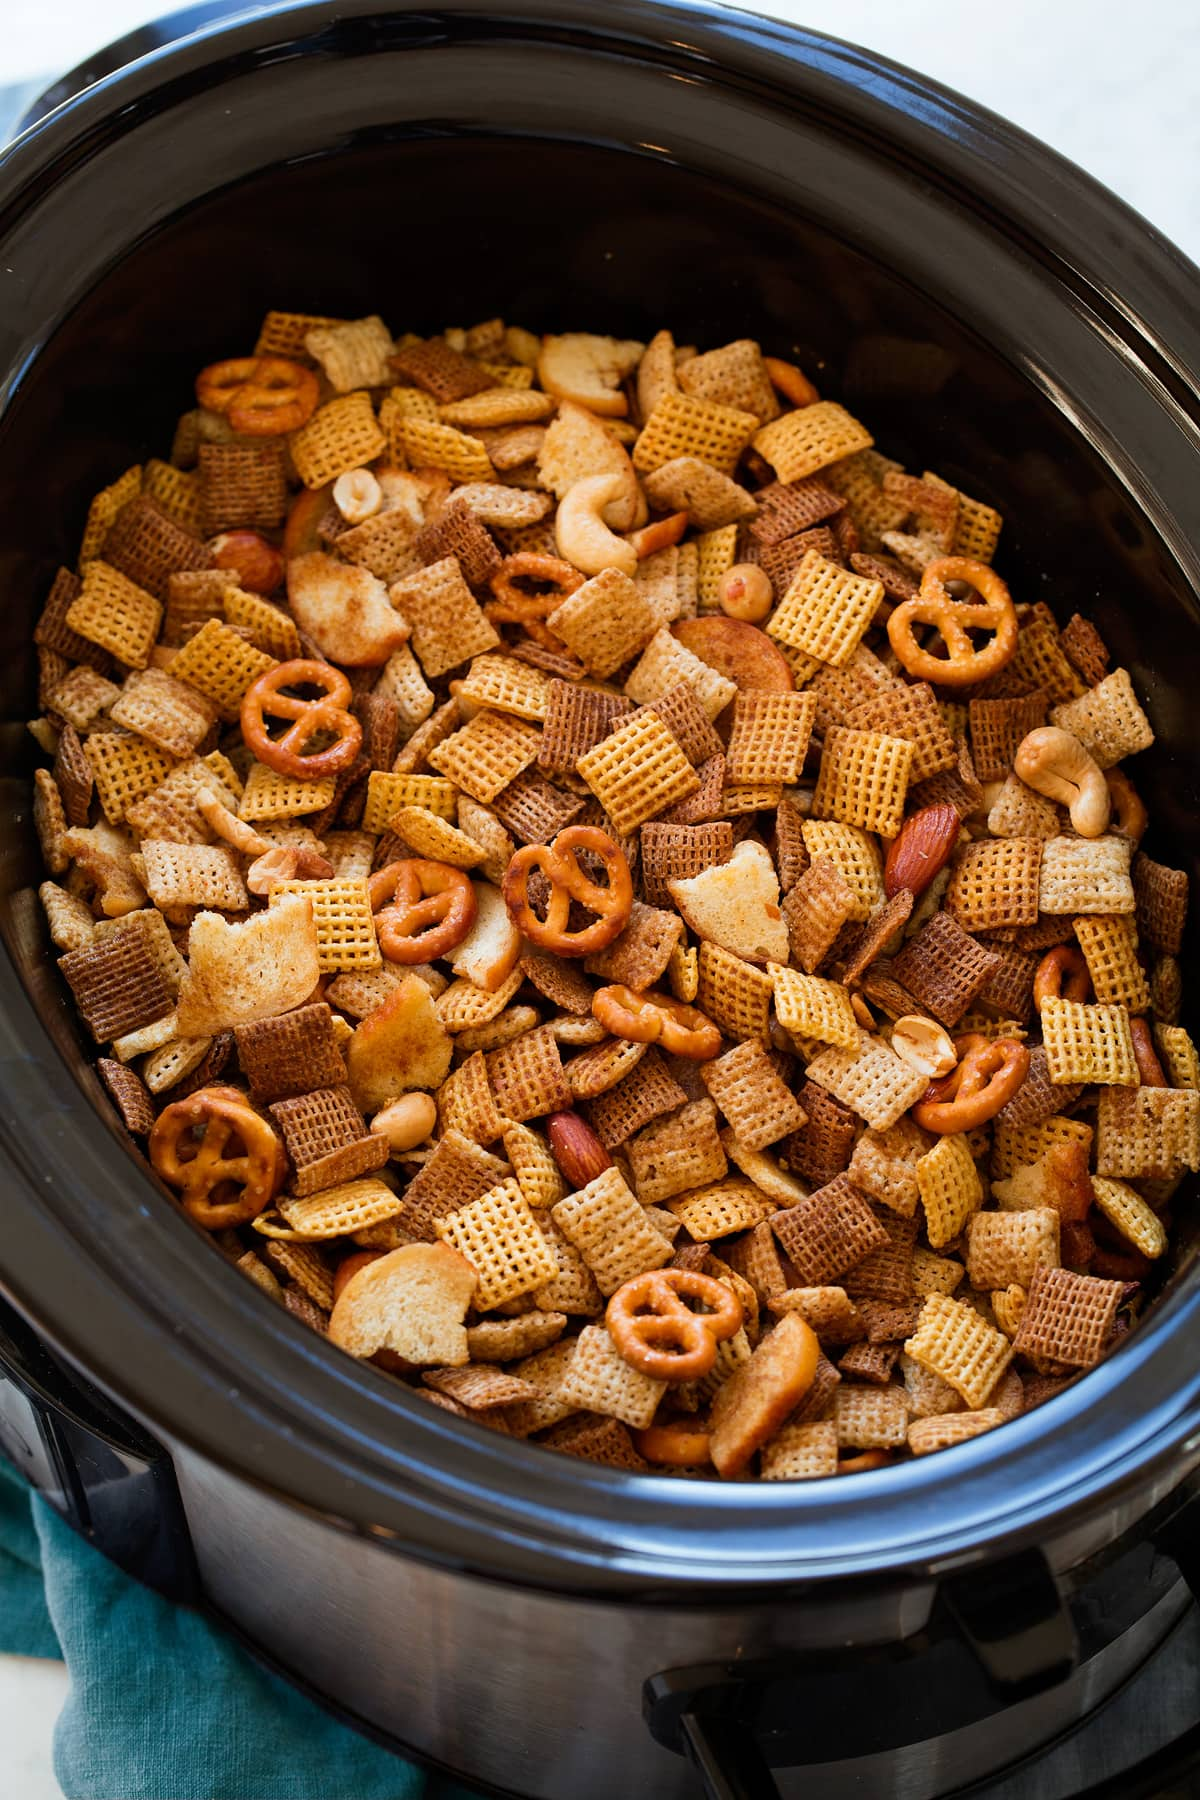 Chex Mix in a slow cooker shown after cooking.